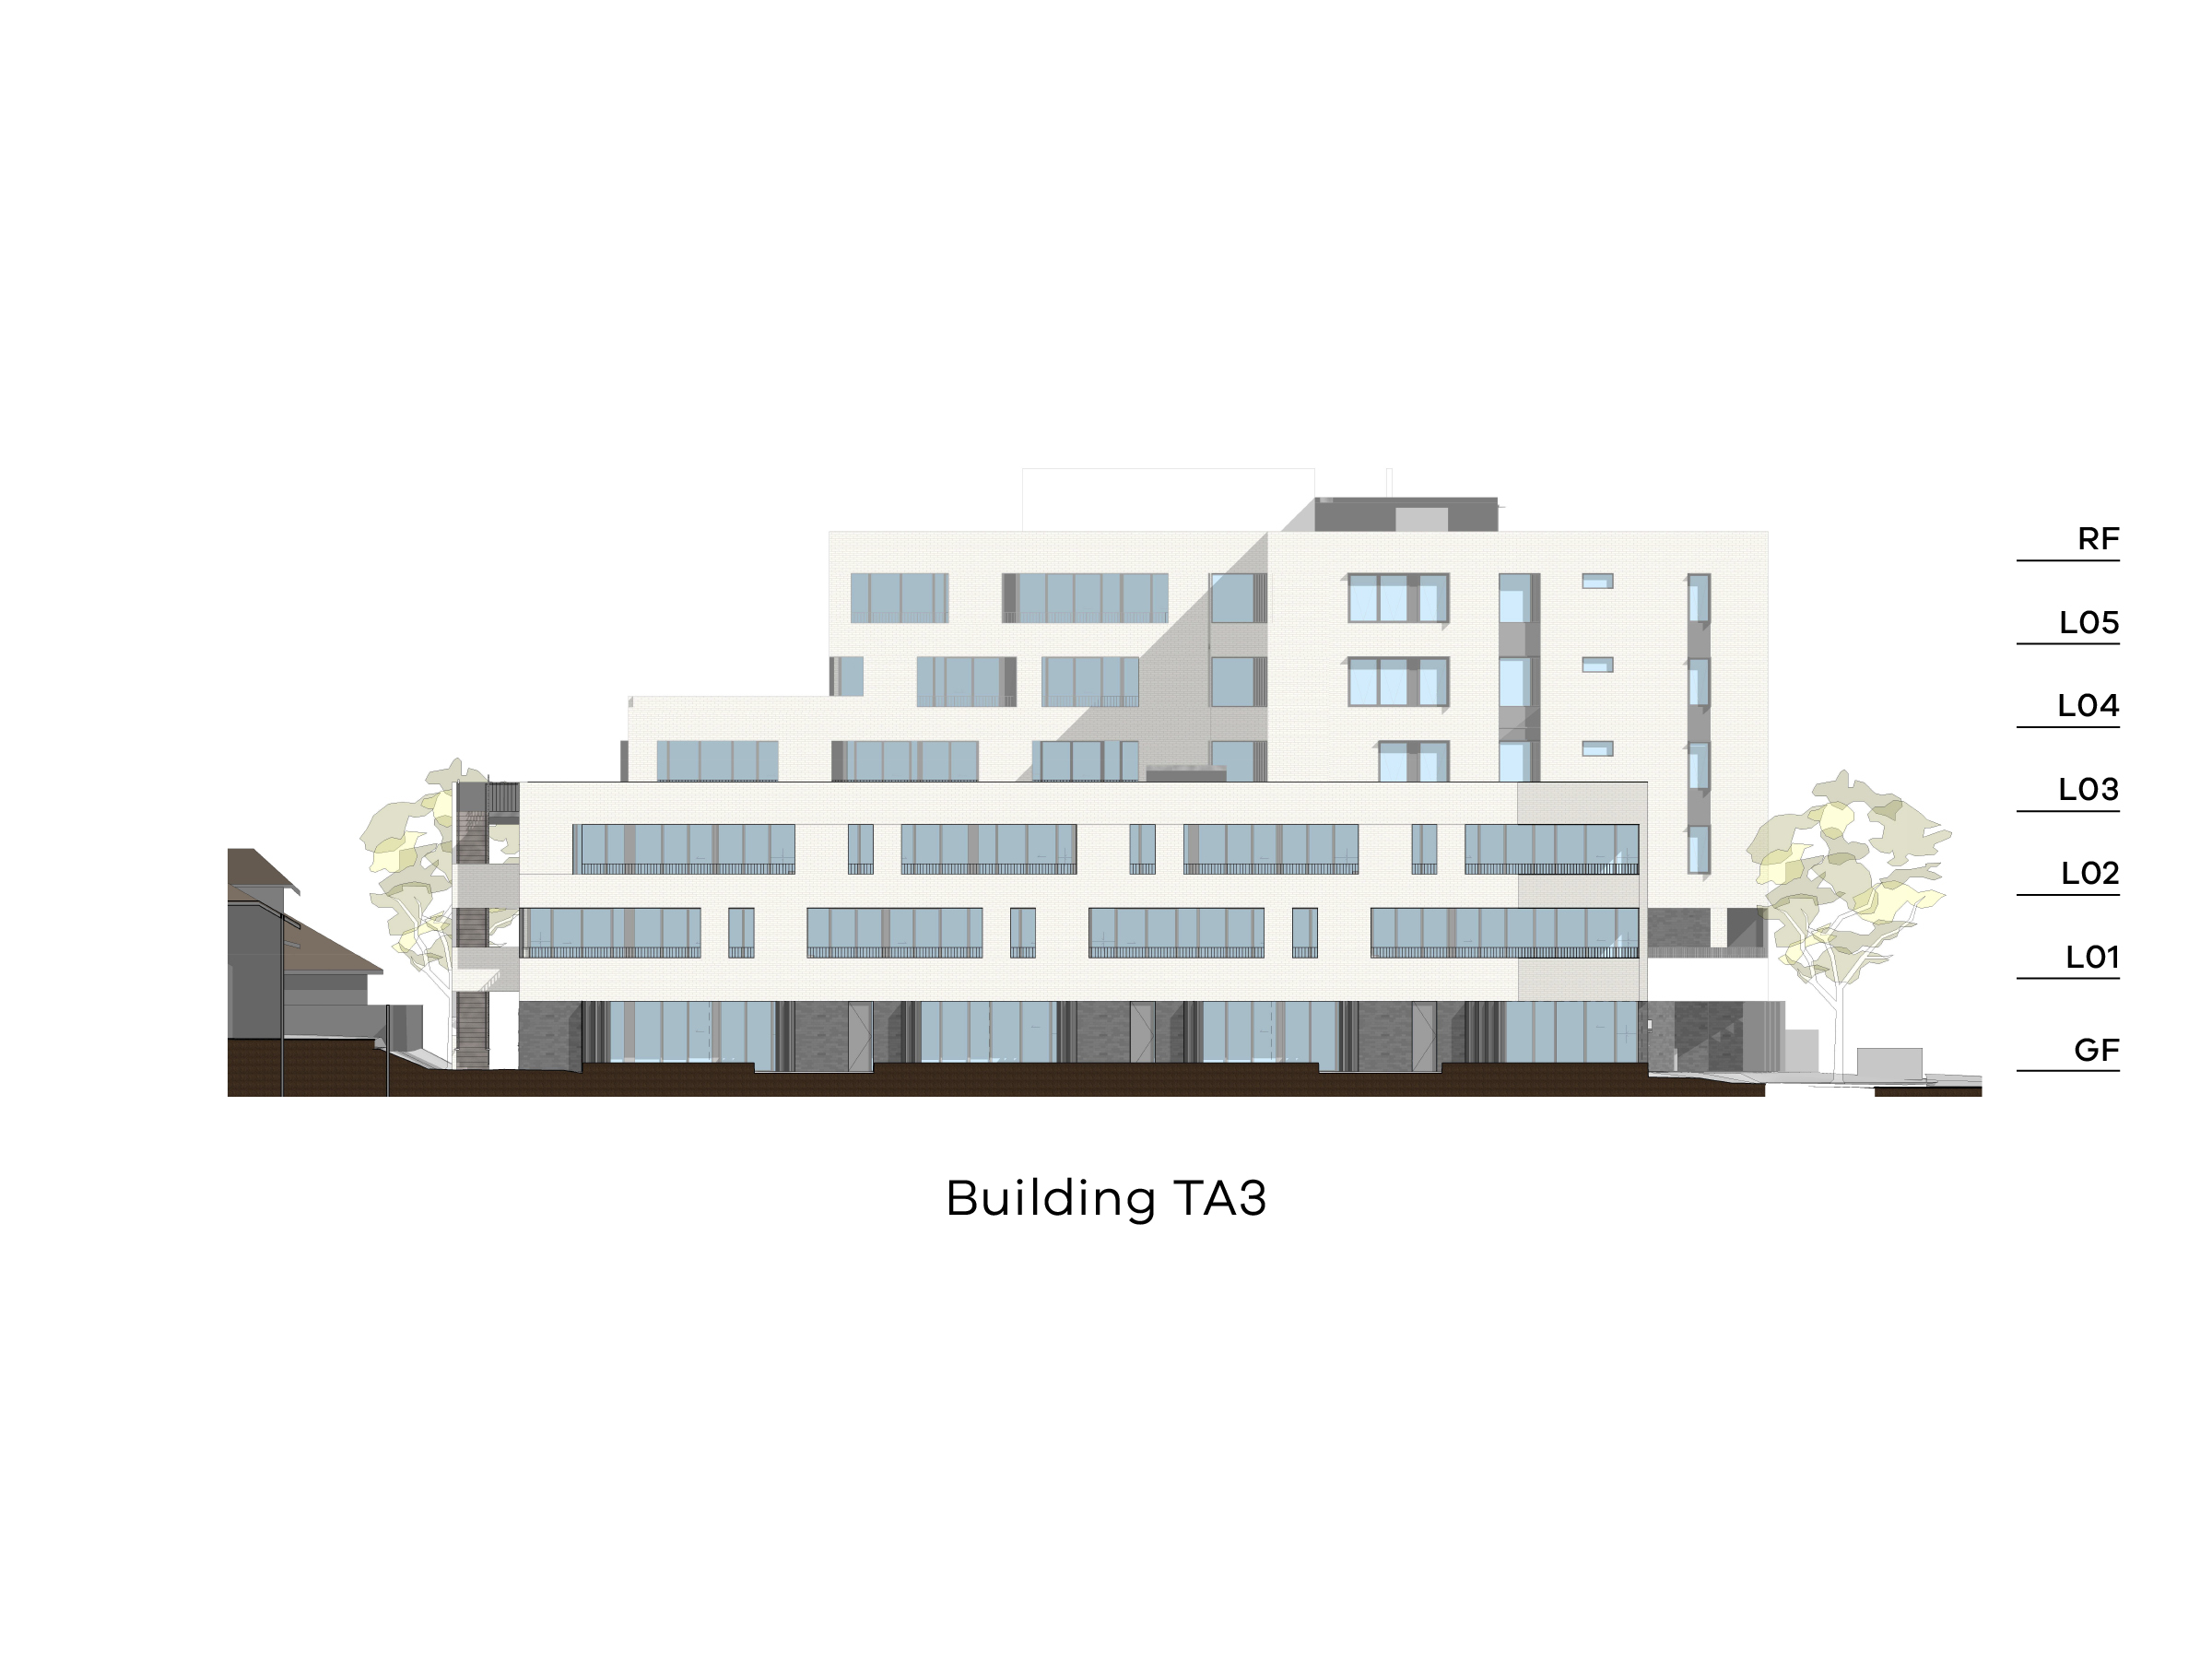 Diagram showing the height of building TA3 as seen from Melbourne Polytechnic looking north. Building TA3 has different heights with a ground floor, level 1-2 and a flat roof on the eastern side and a ground floor, level 1-5 and a flat roof on the western side.